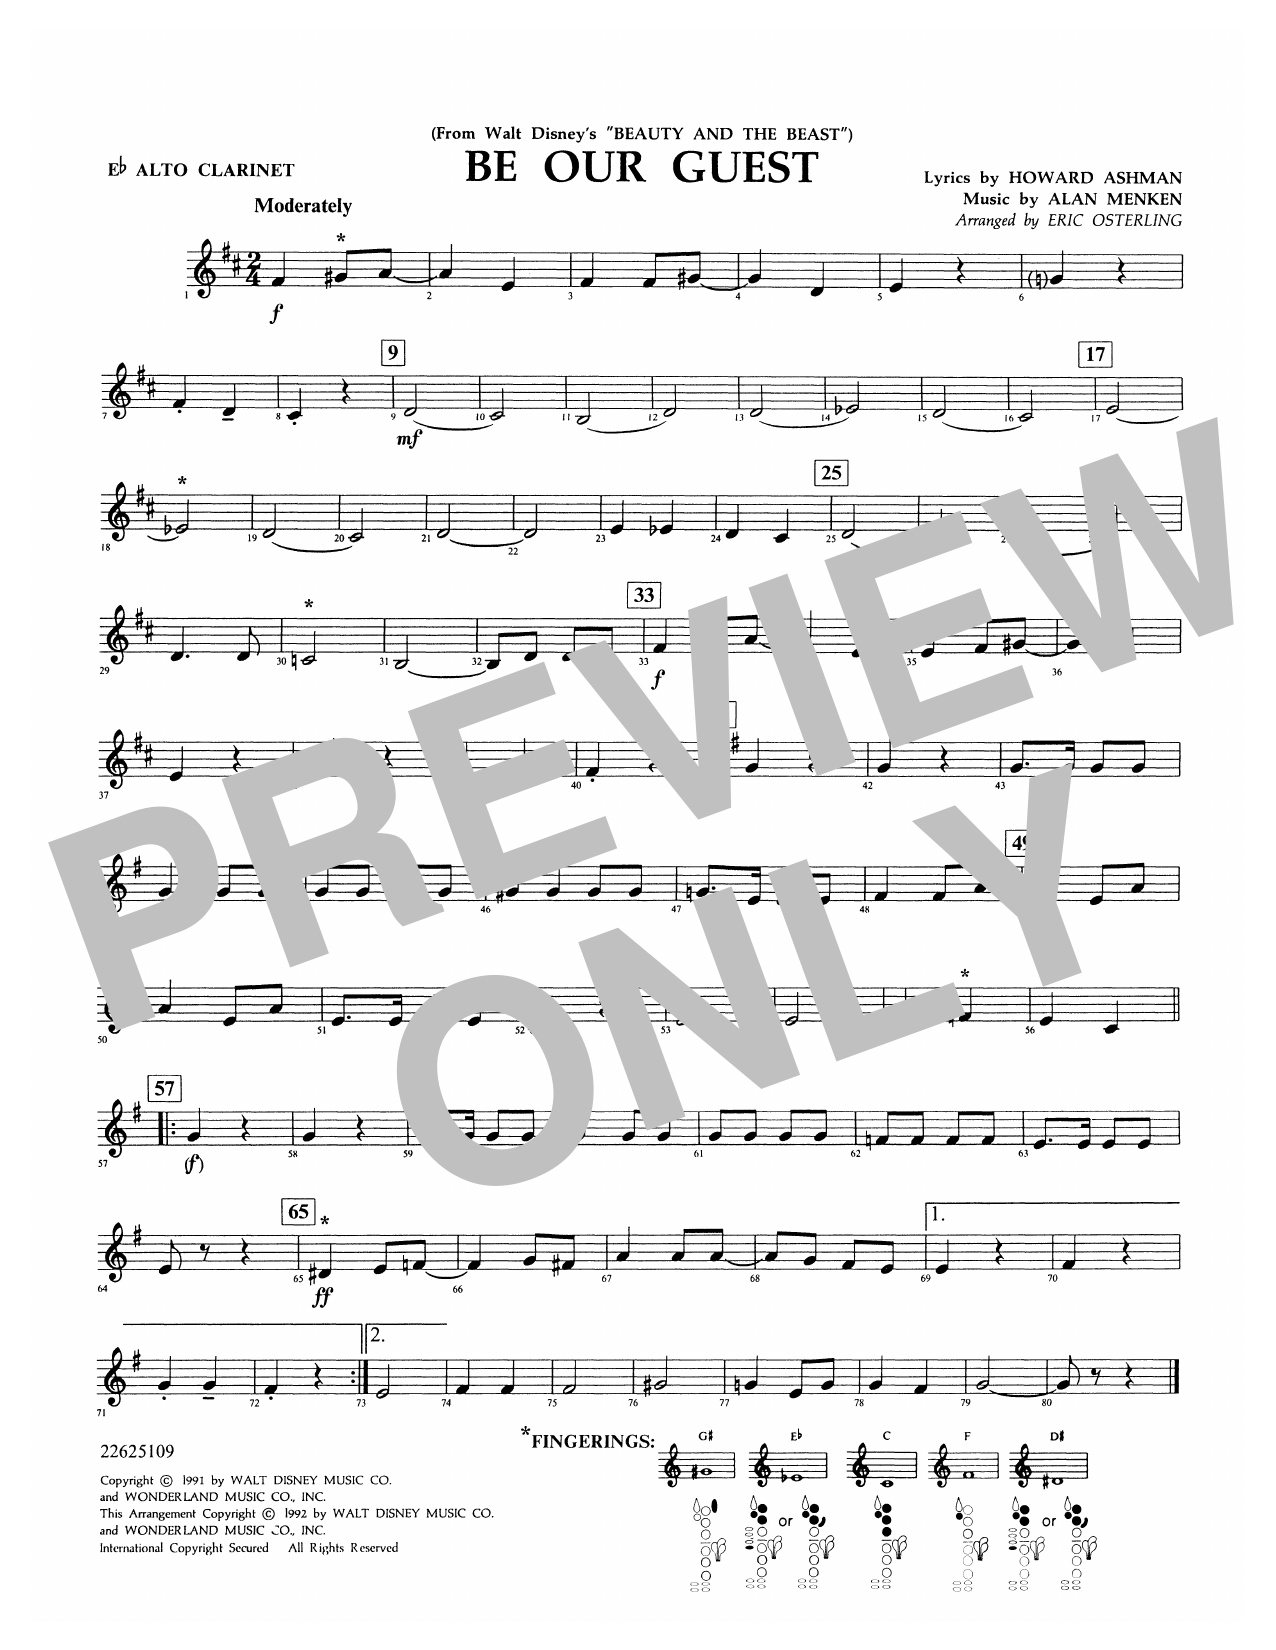 Be Our Guest (from Beauty And The Beast) (arr. Eric Osterling) - Eb Alto Clarinet Sheet Music